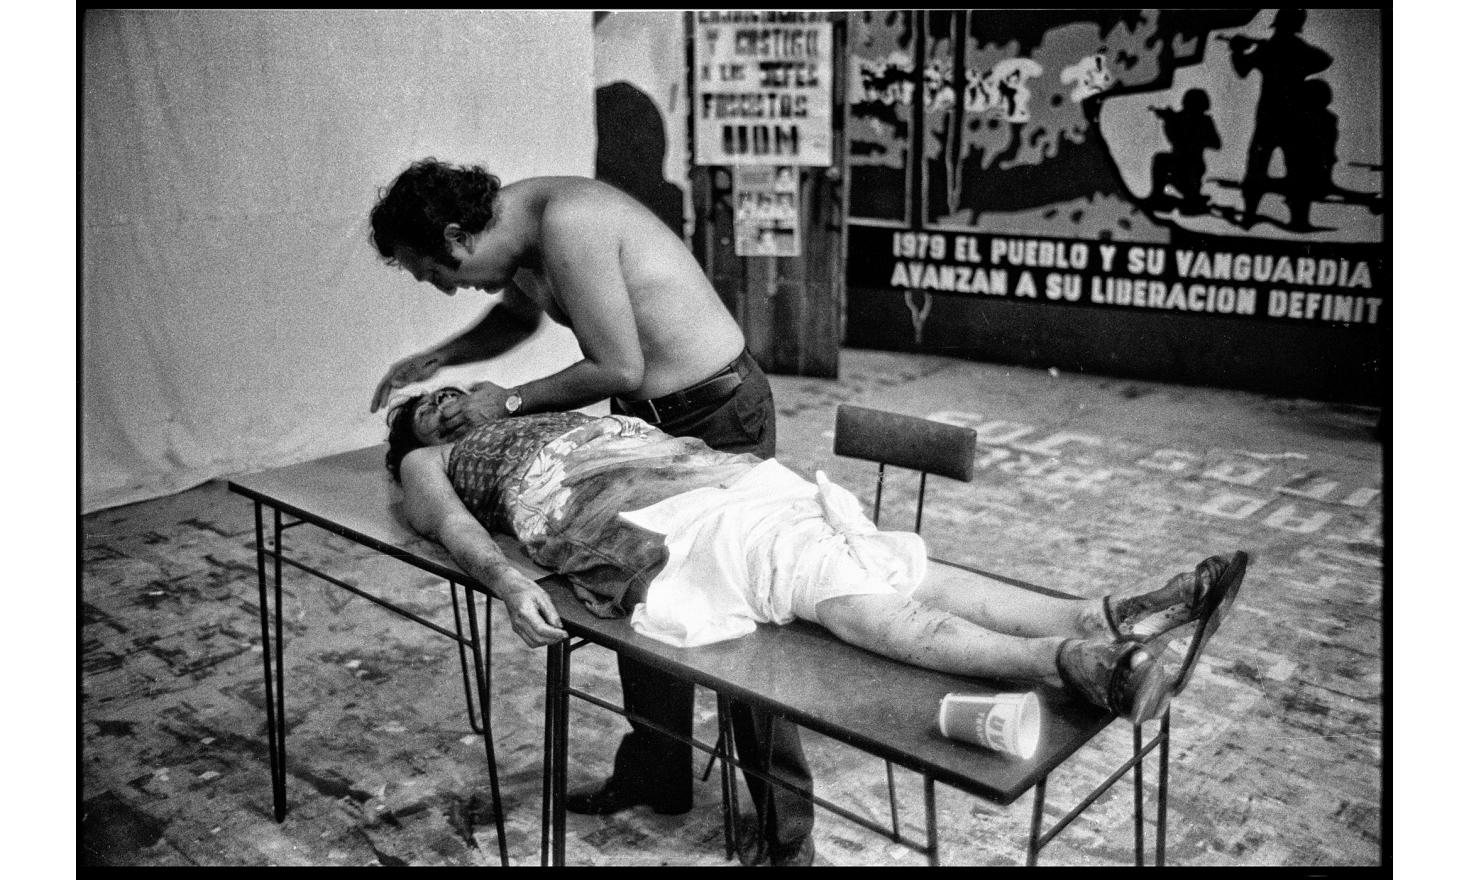 A woman has been shot dead during a demonstration. A crying man puts his shirt on her legs. San Salvador. October 1979